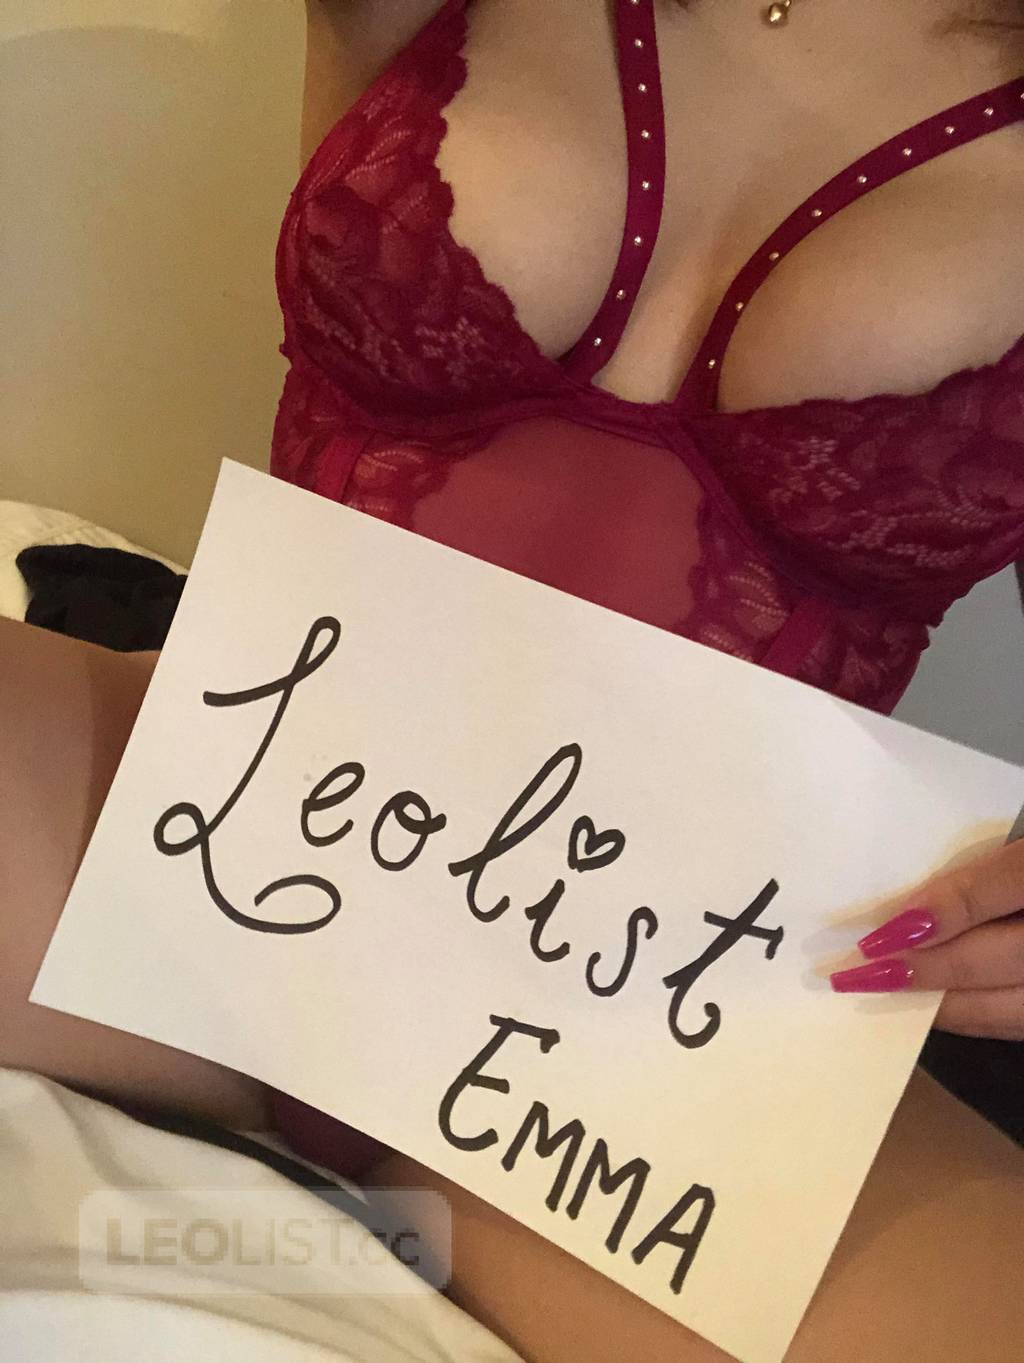 🌟West End DOWNTOWN💋 young sexy latina 🍑🌟